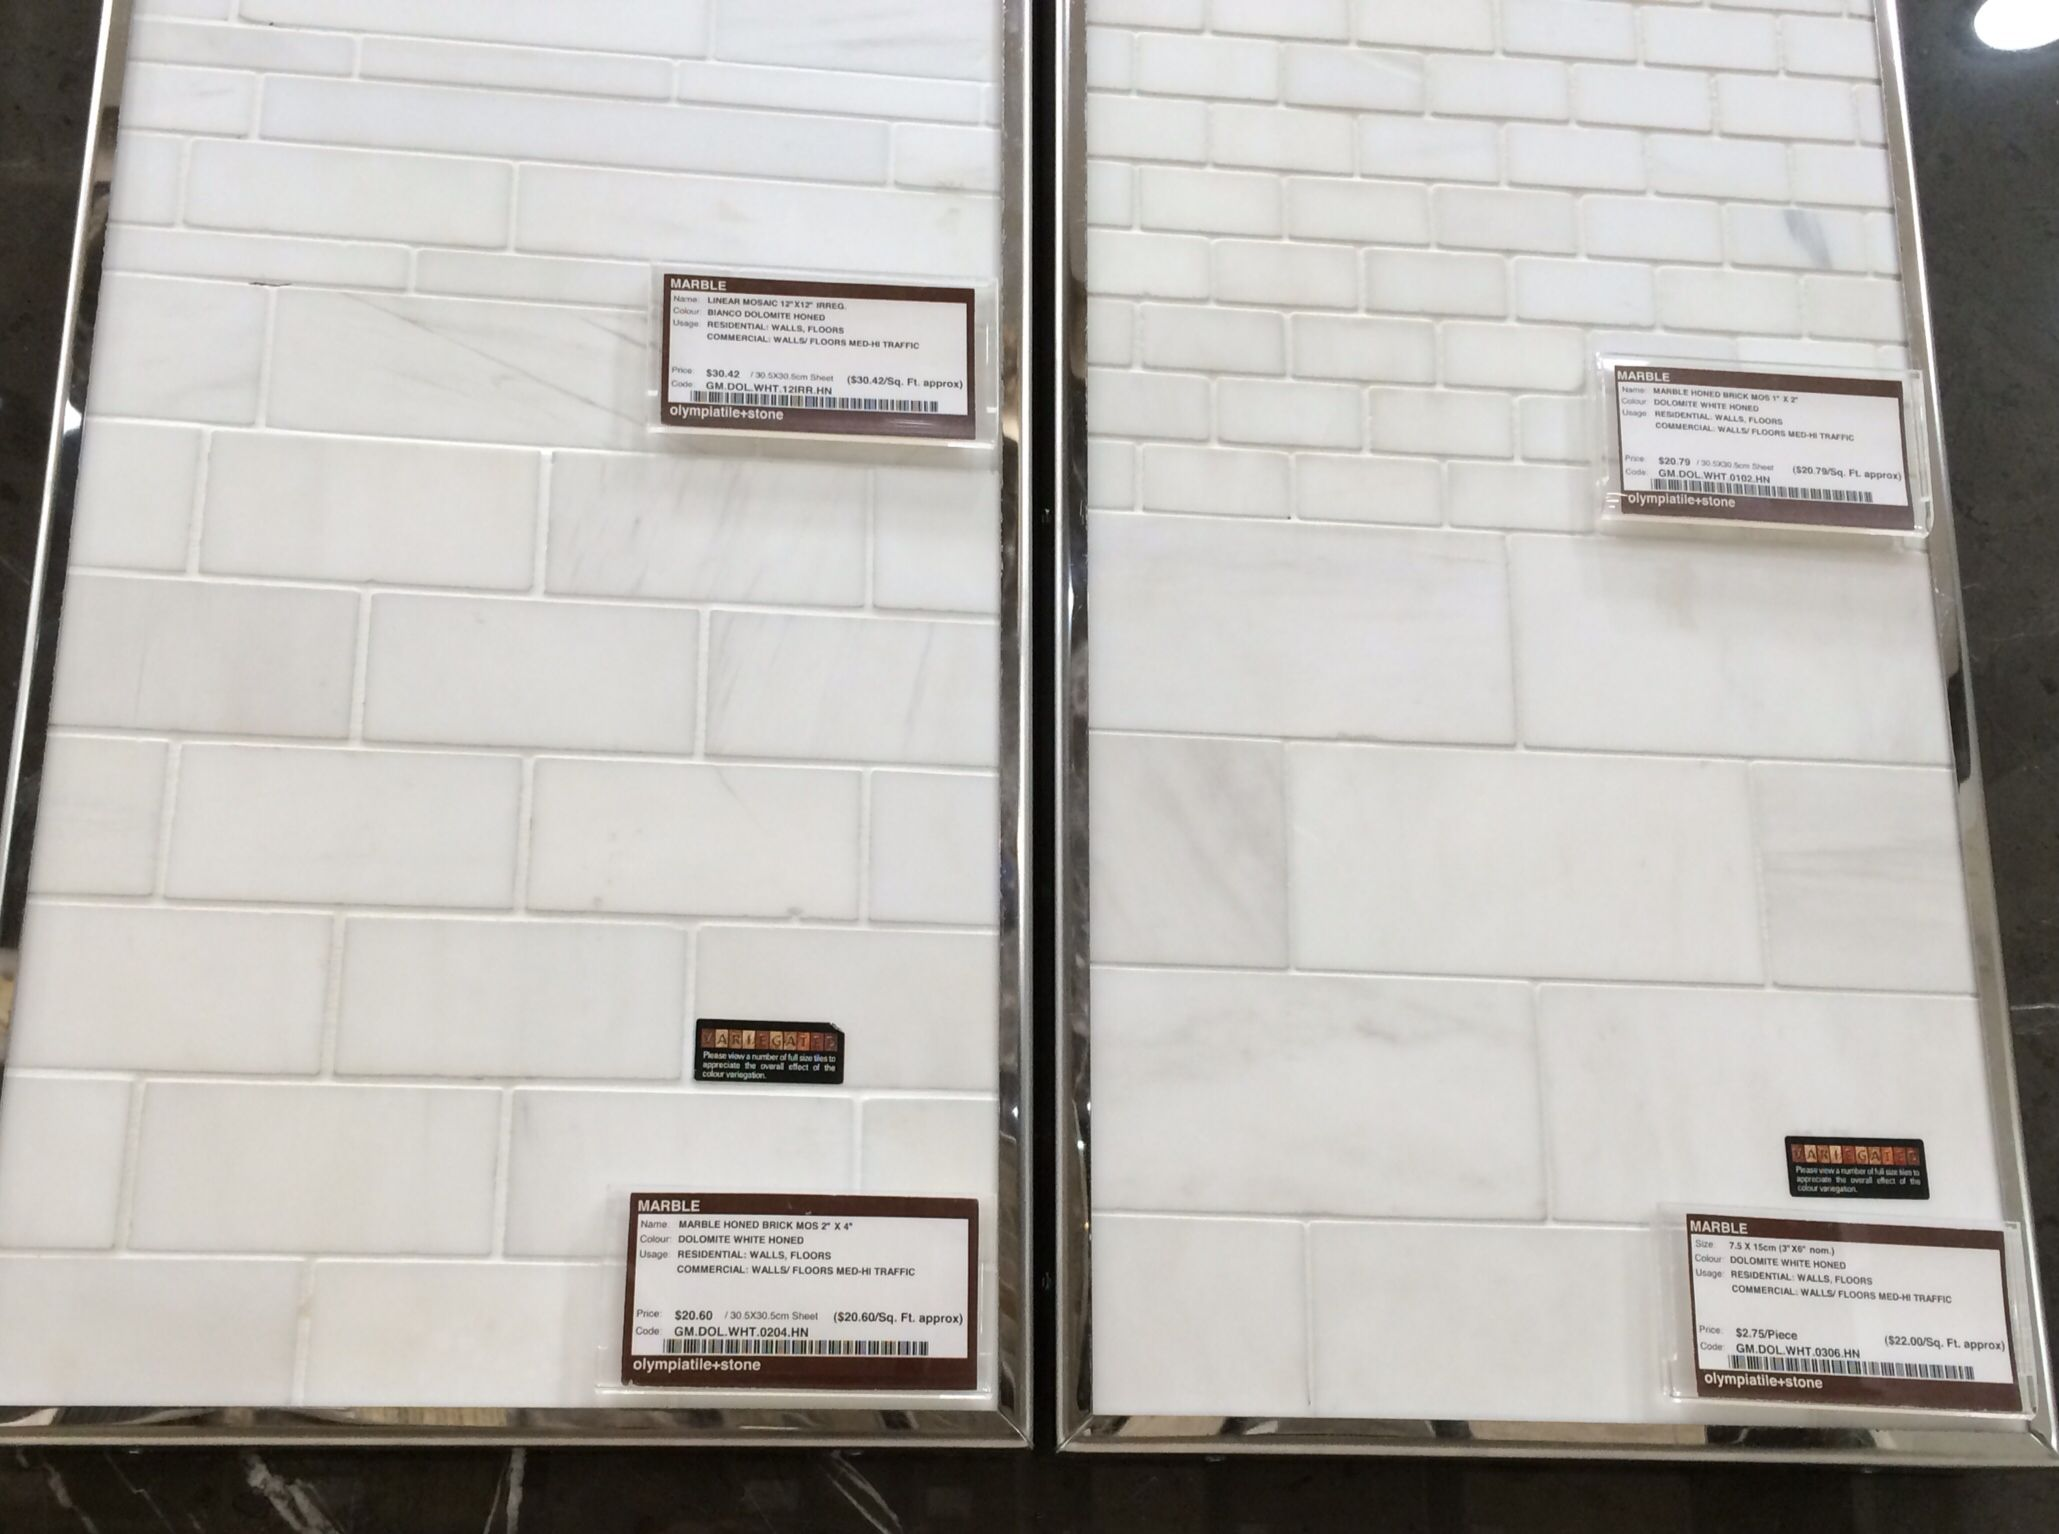 White Honed Dolomite Marble Tiles From Olympia Possible